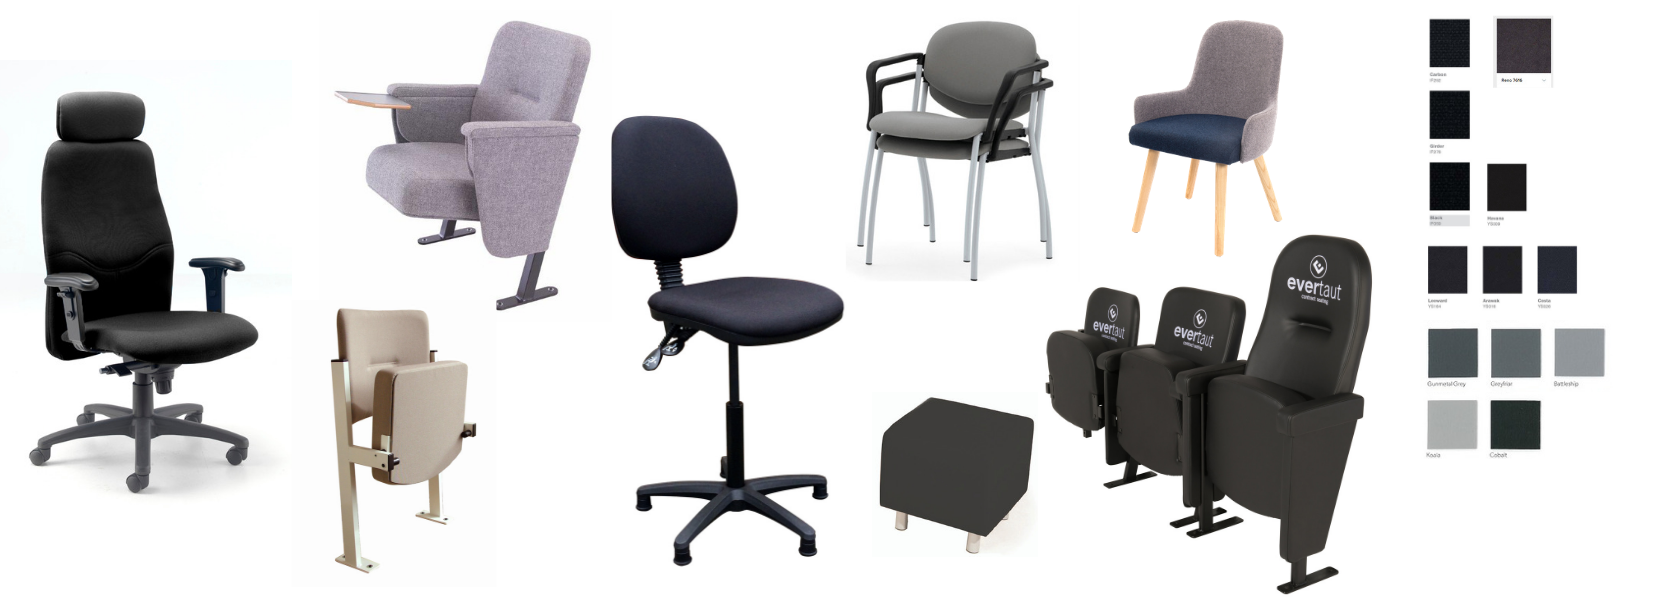 Selection of different chair styles in a variety of neutral fabrics with colour swatches